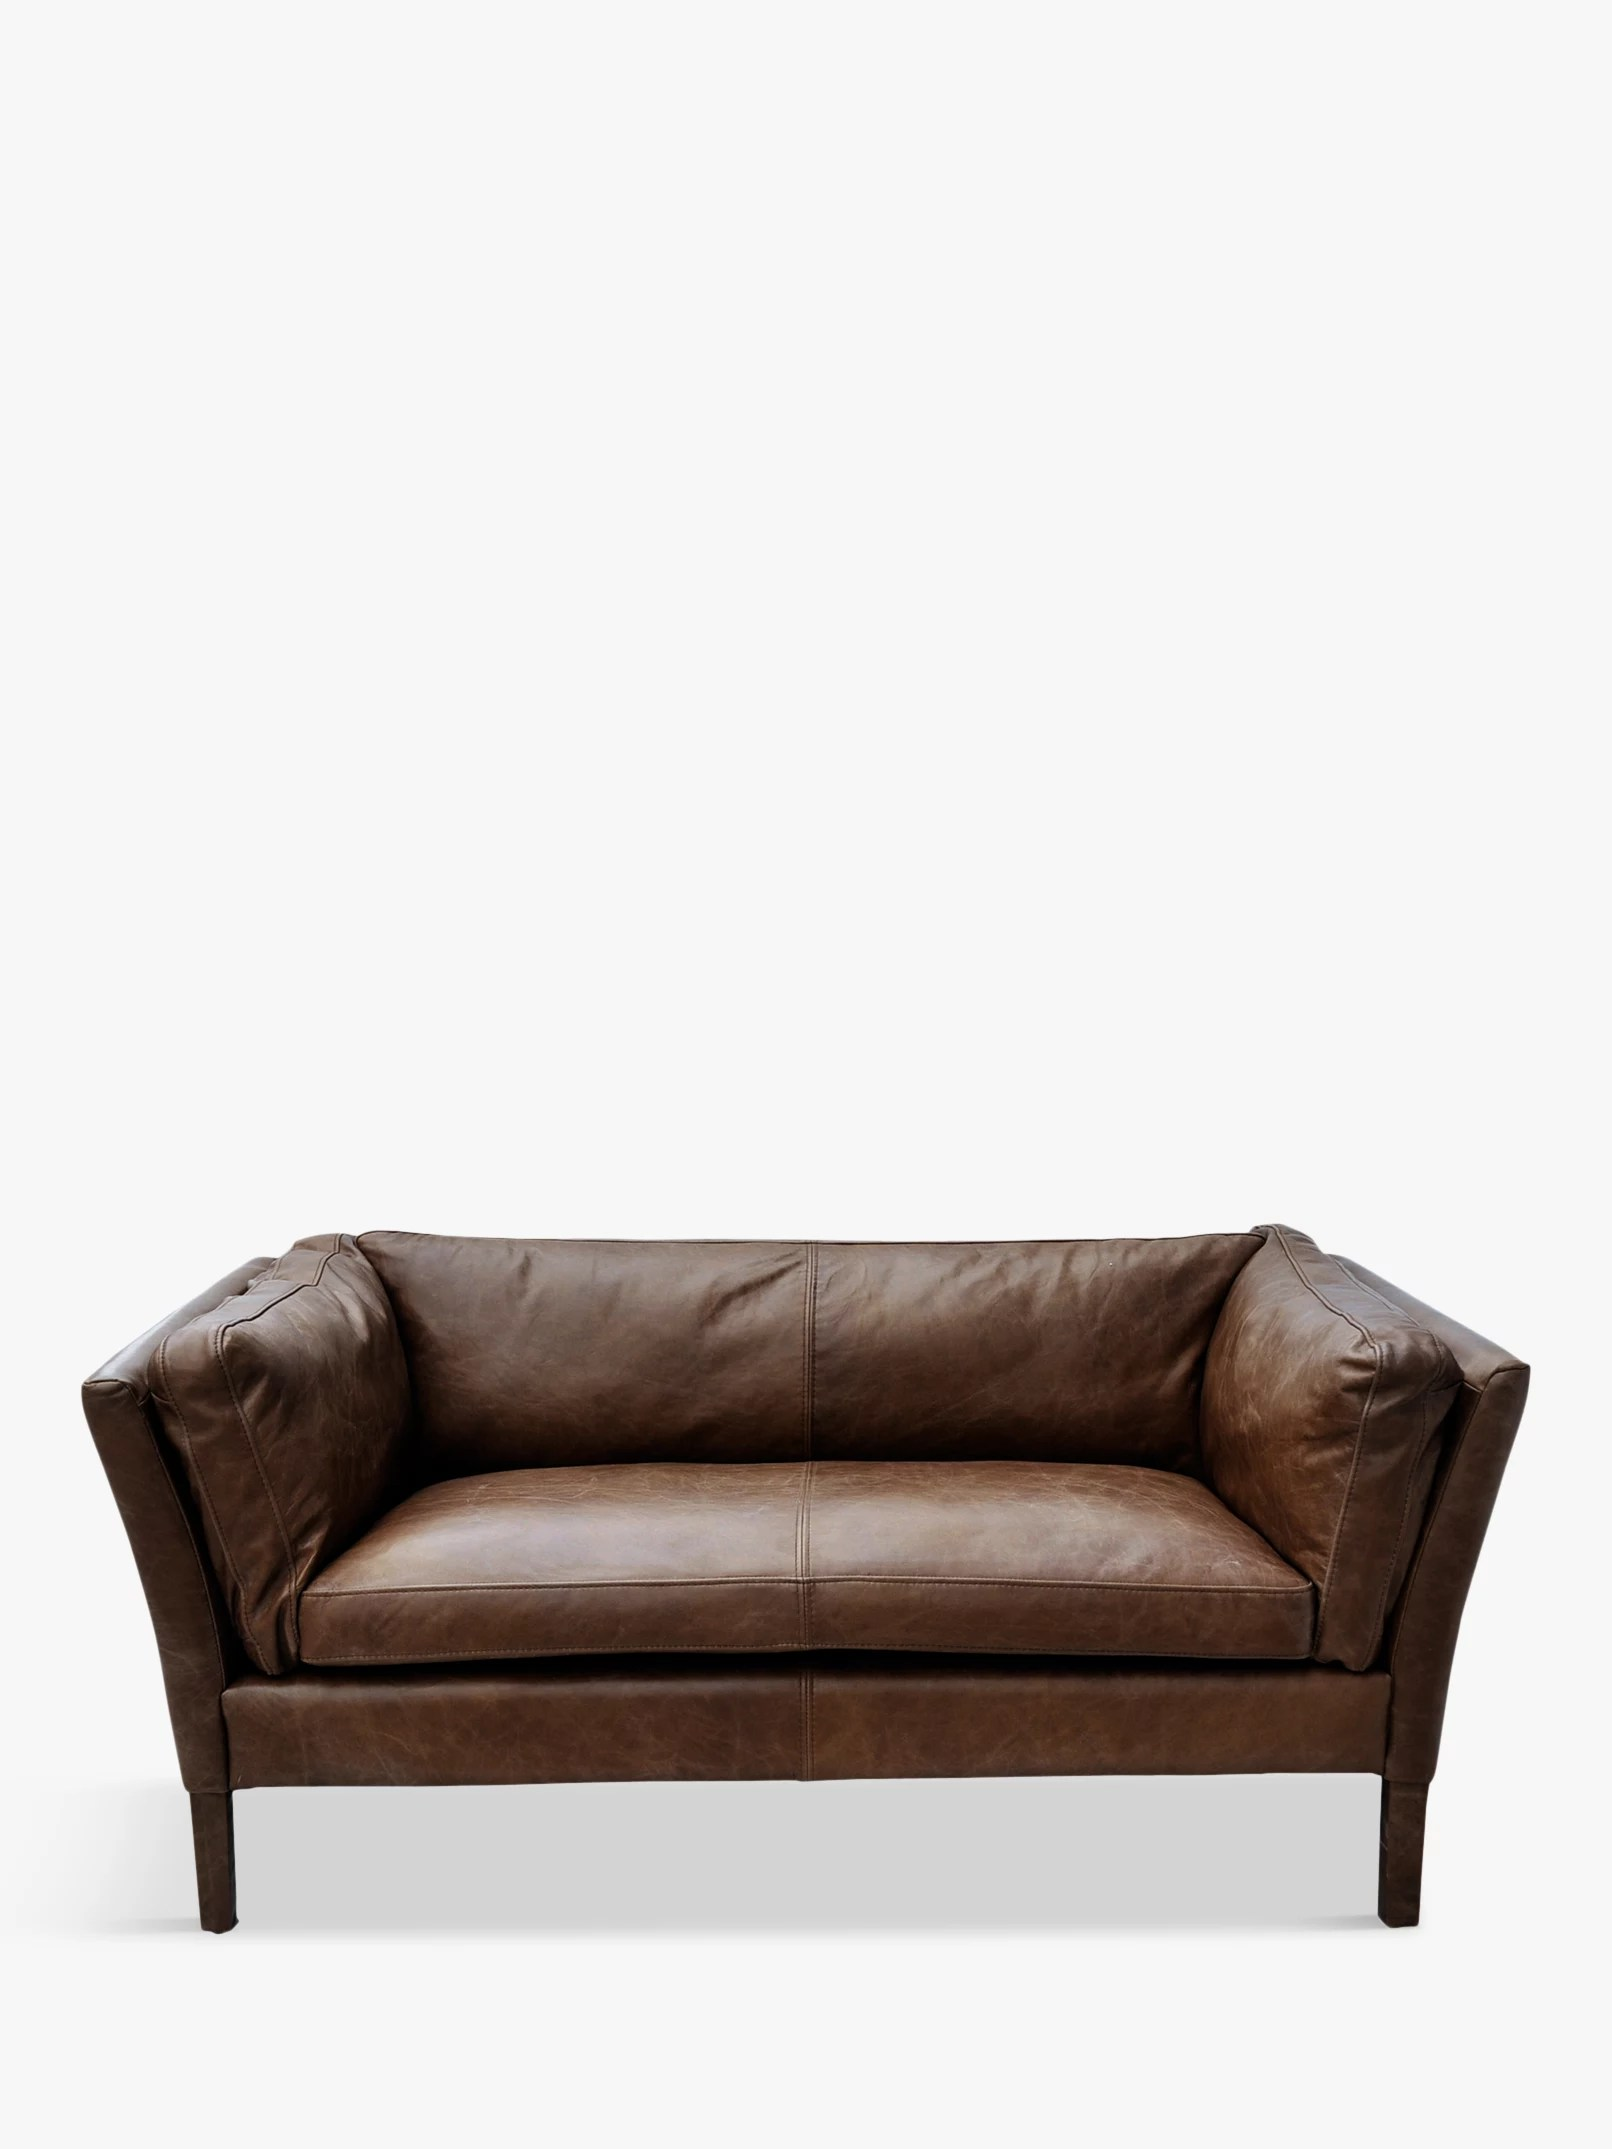 Sofa For Sale Wirral Halo Groucho Small Aniline Leather Sofa Riders Cocoa At John